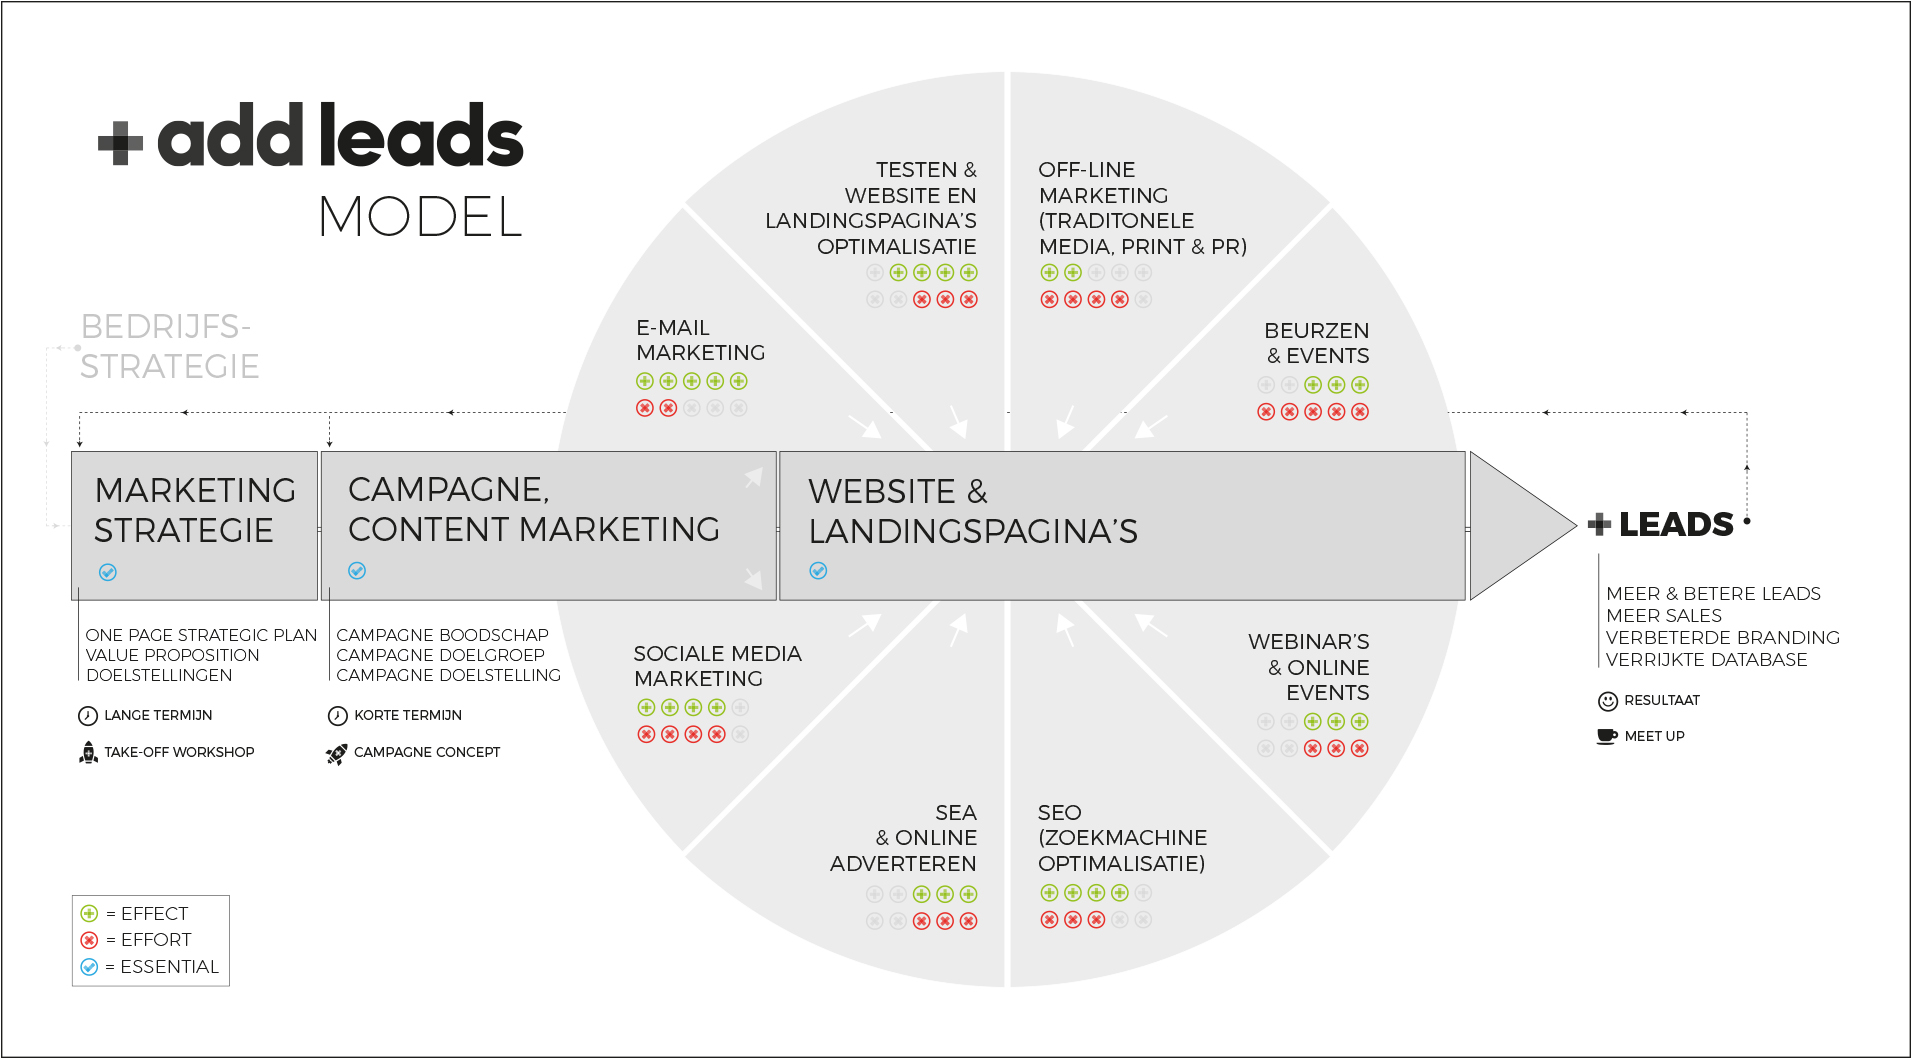 addleads-model